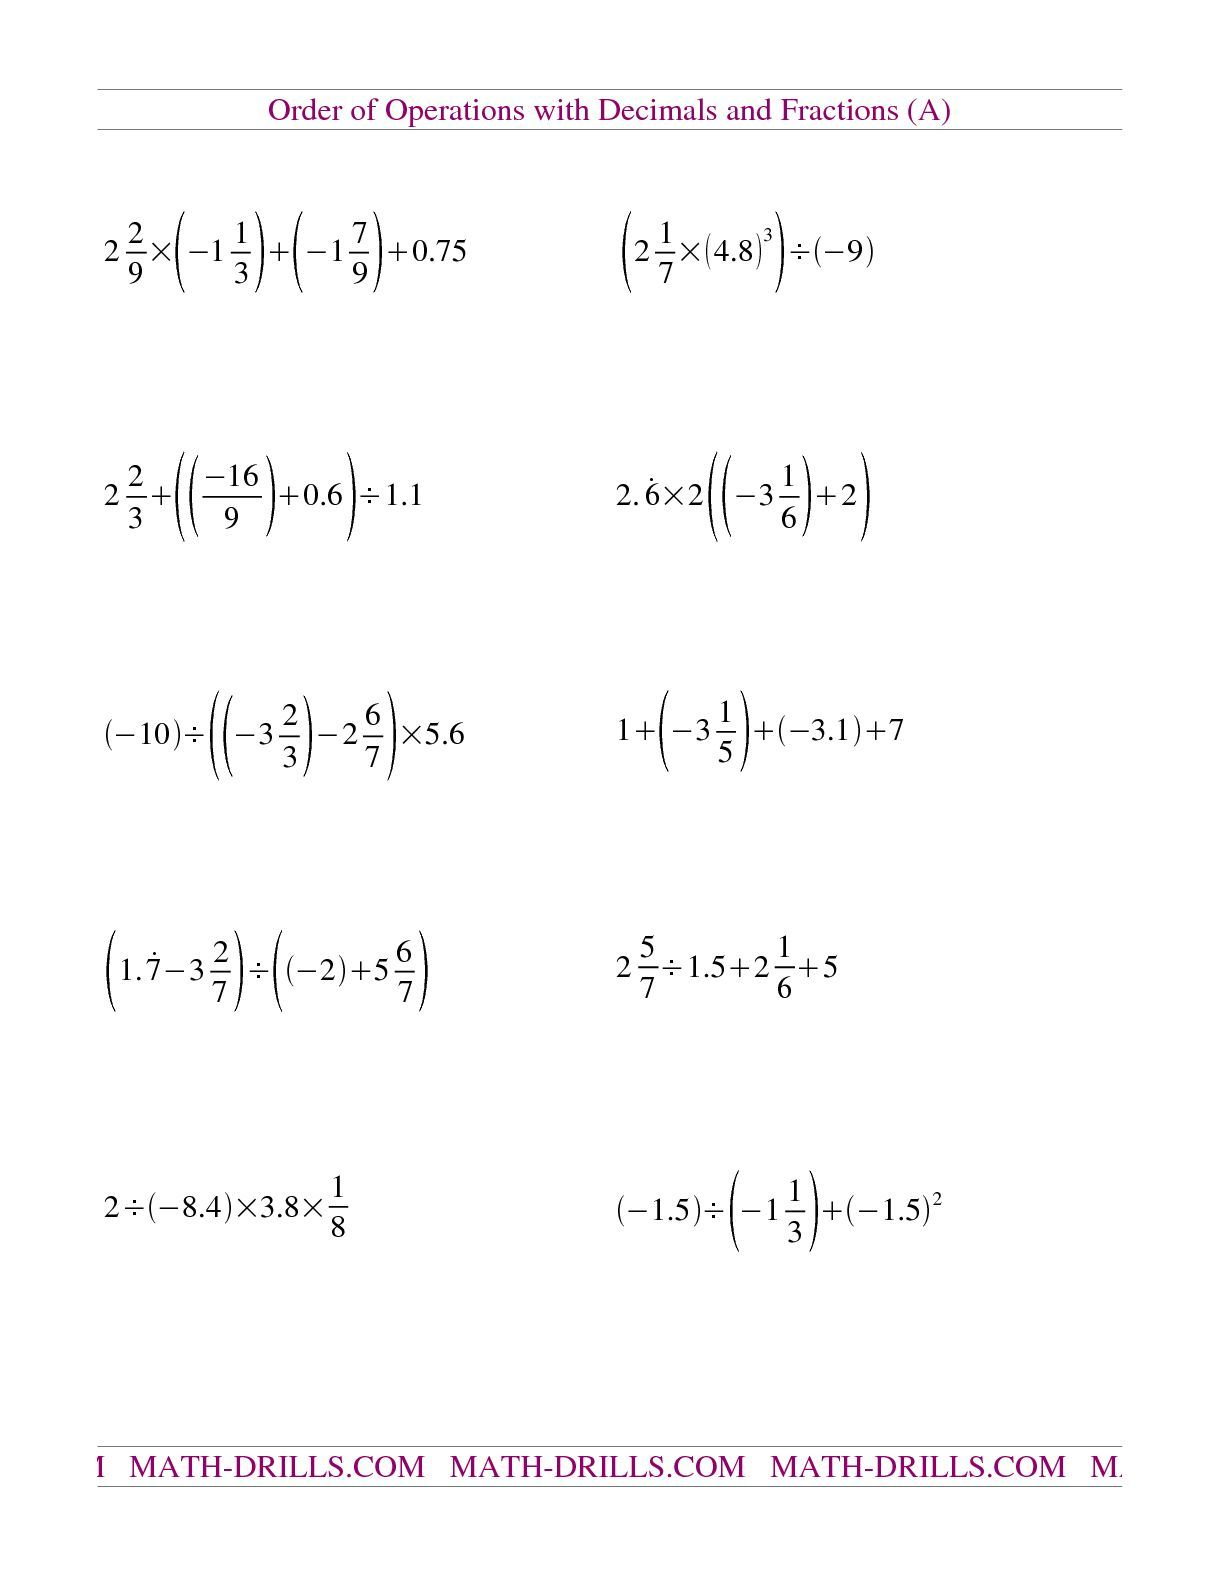 The Decimals and Fractions Mixed with Negatives (A) math worksheet ...